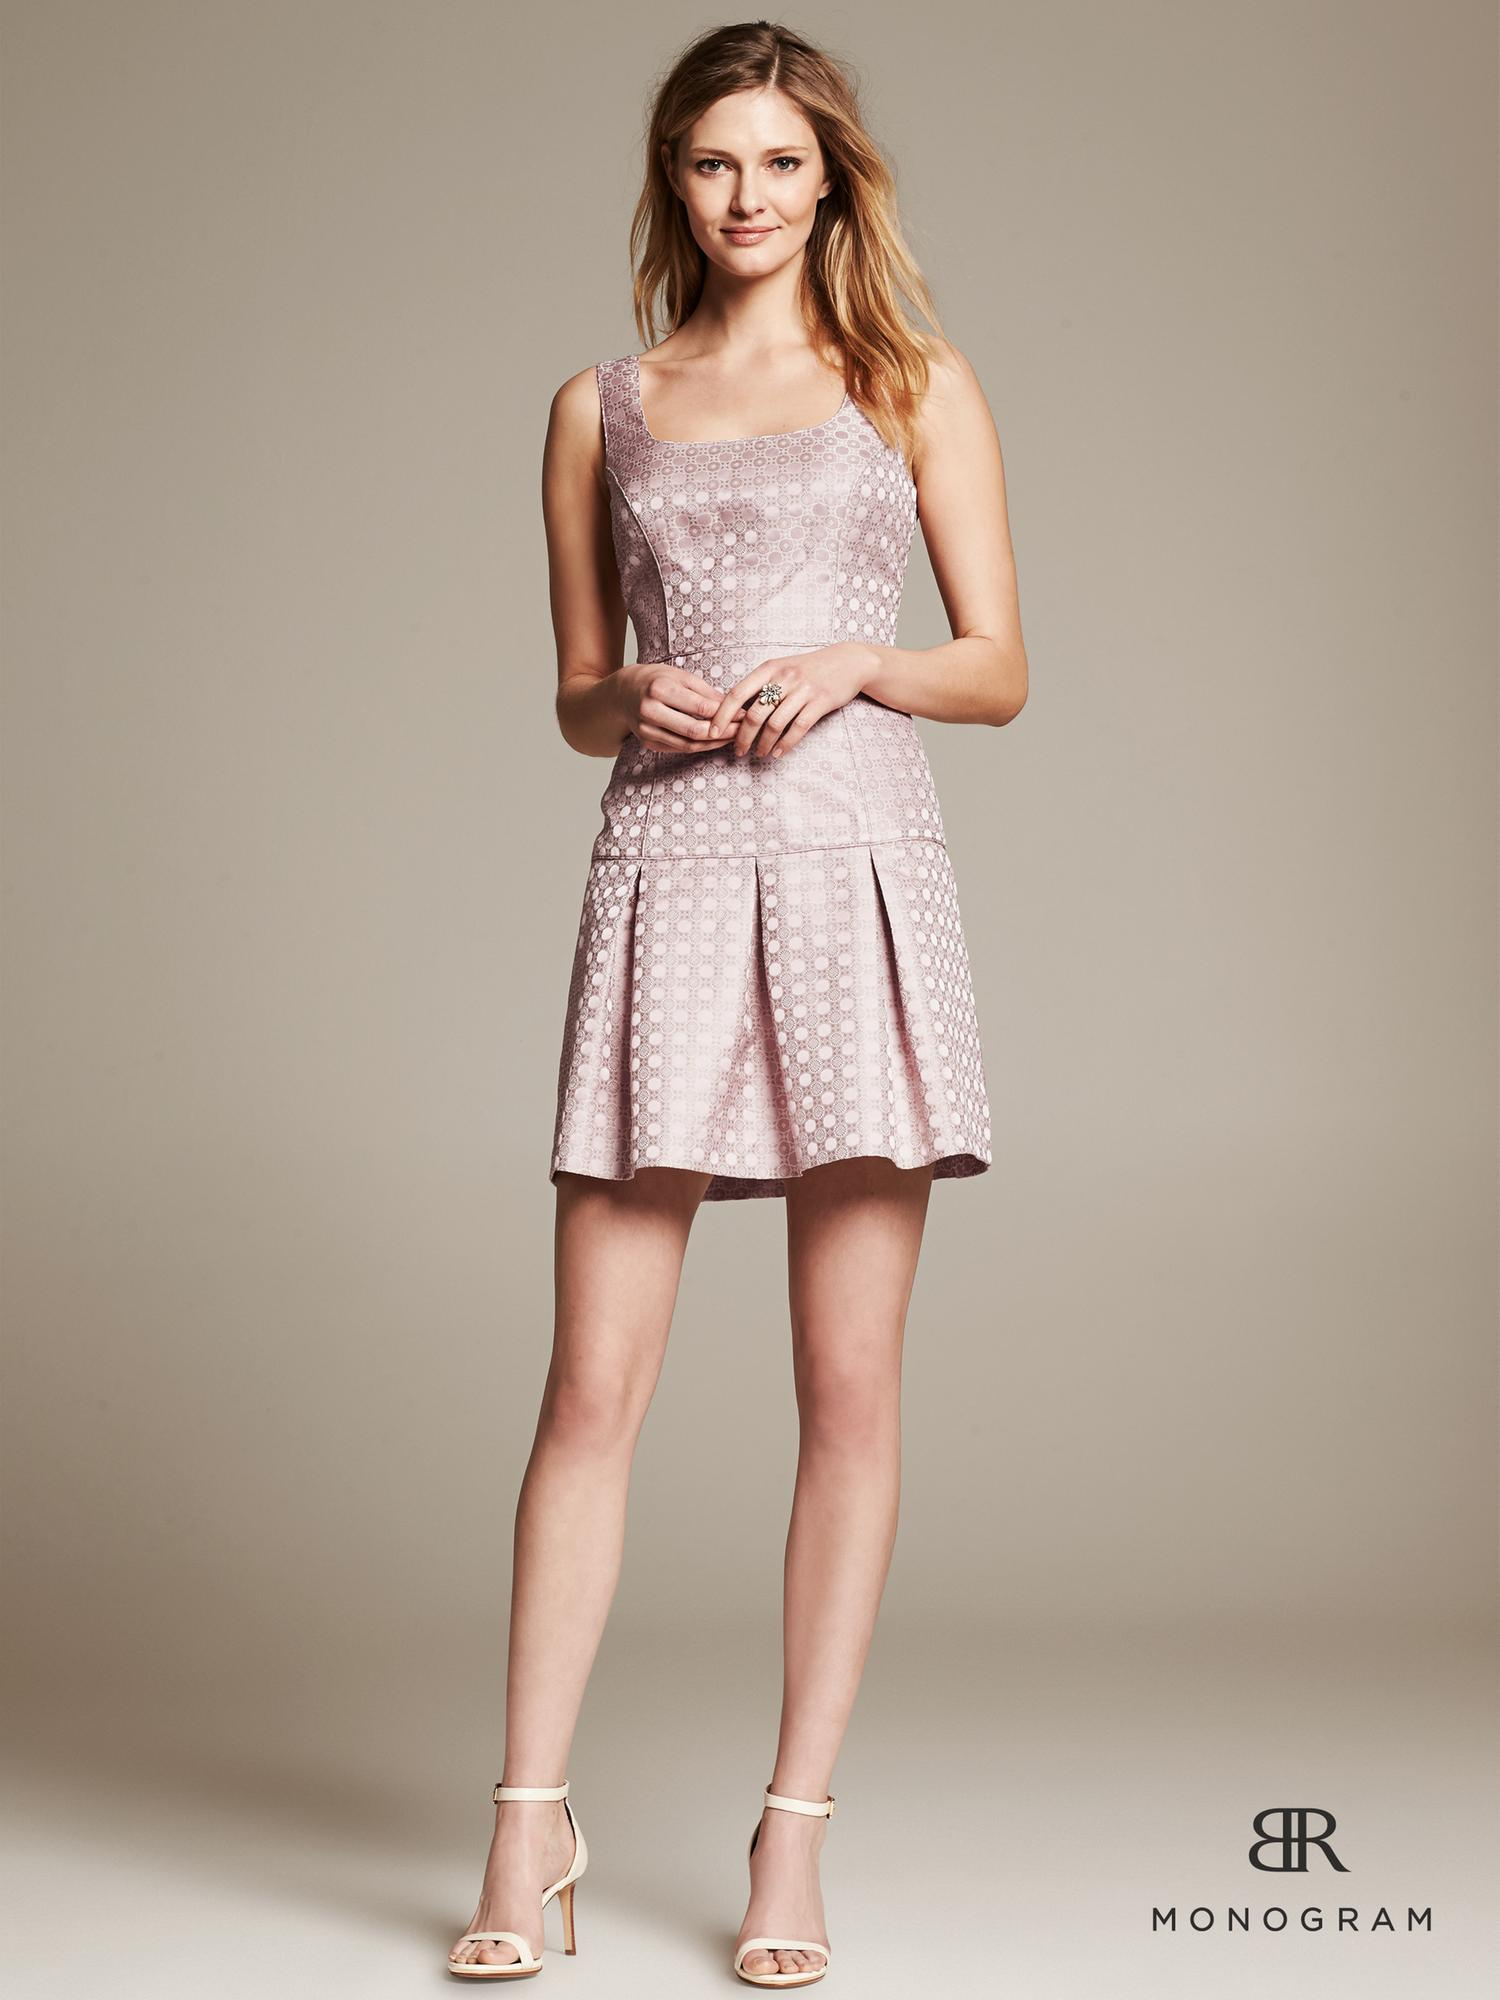 Banana Republic Monogram Pink Jacquard Fit And Flare Dress